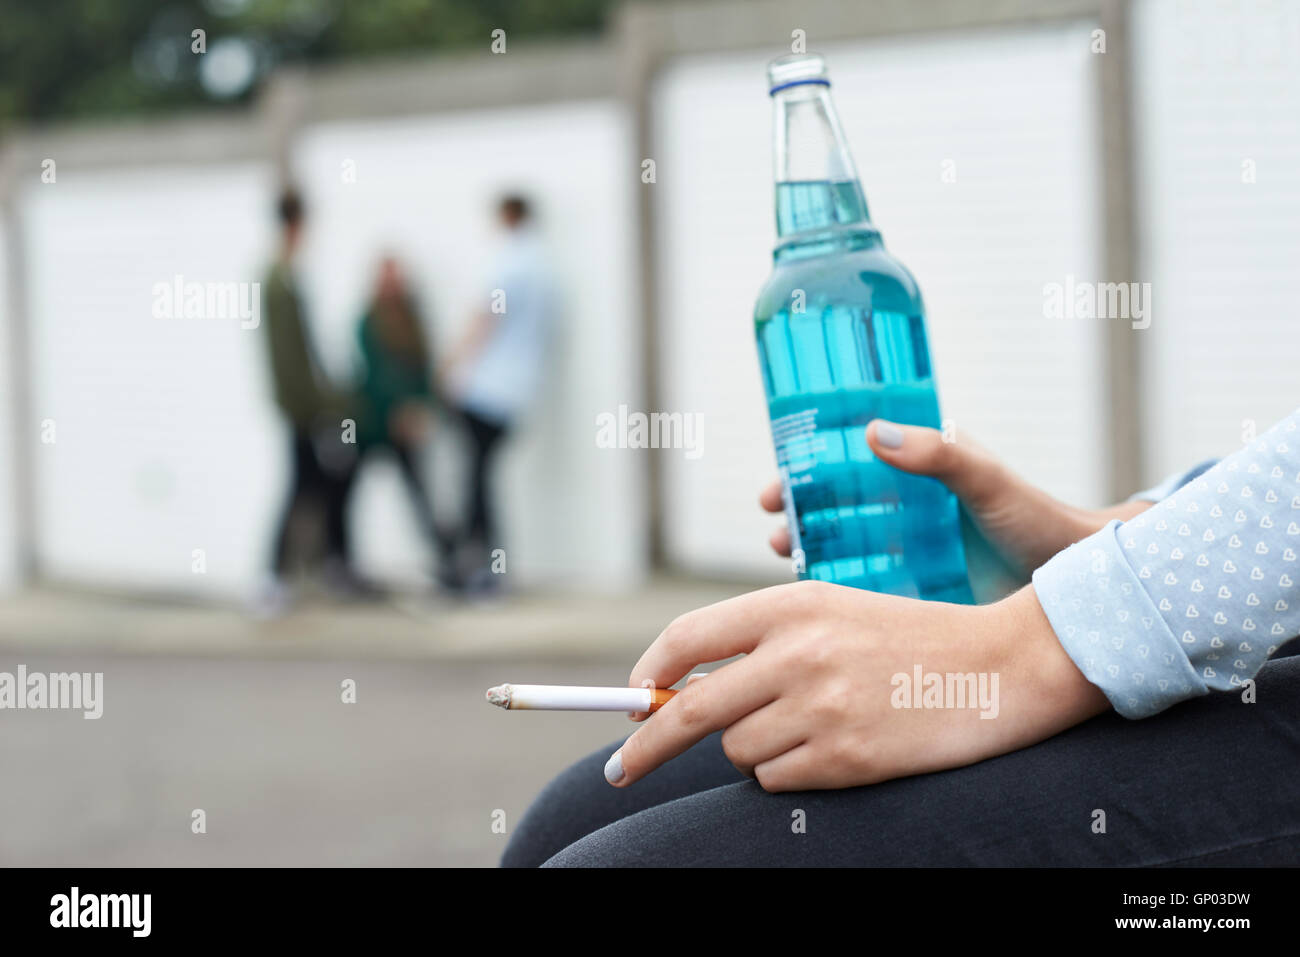 Close Up Of Teenager Drinking Alcohol And Smoking - Stock Image